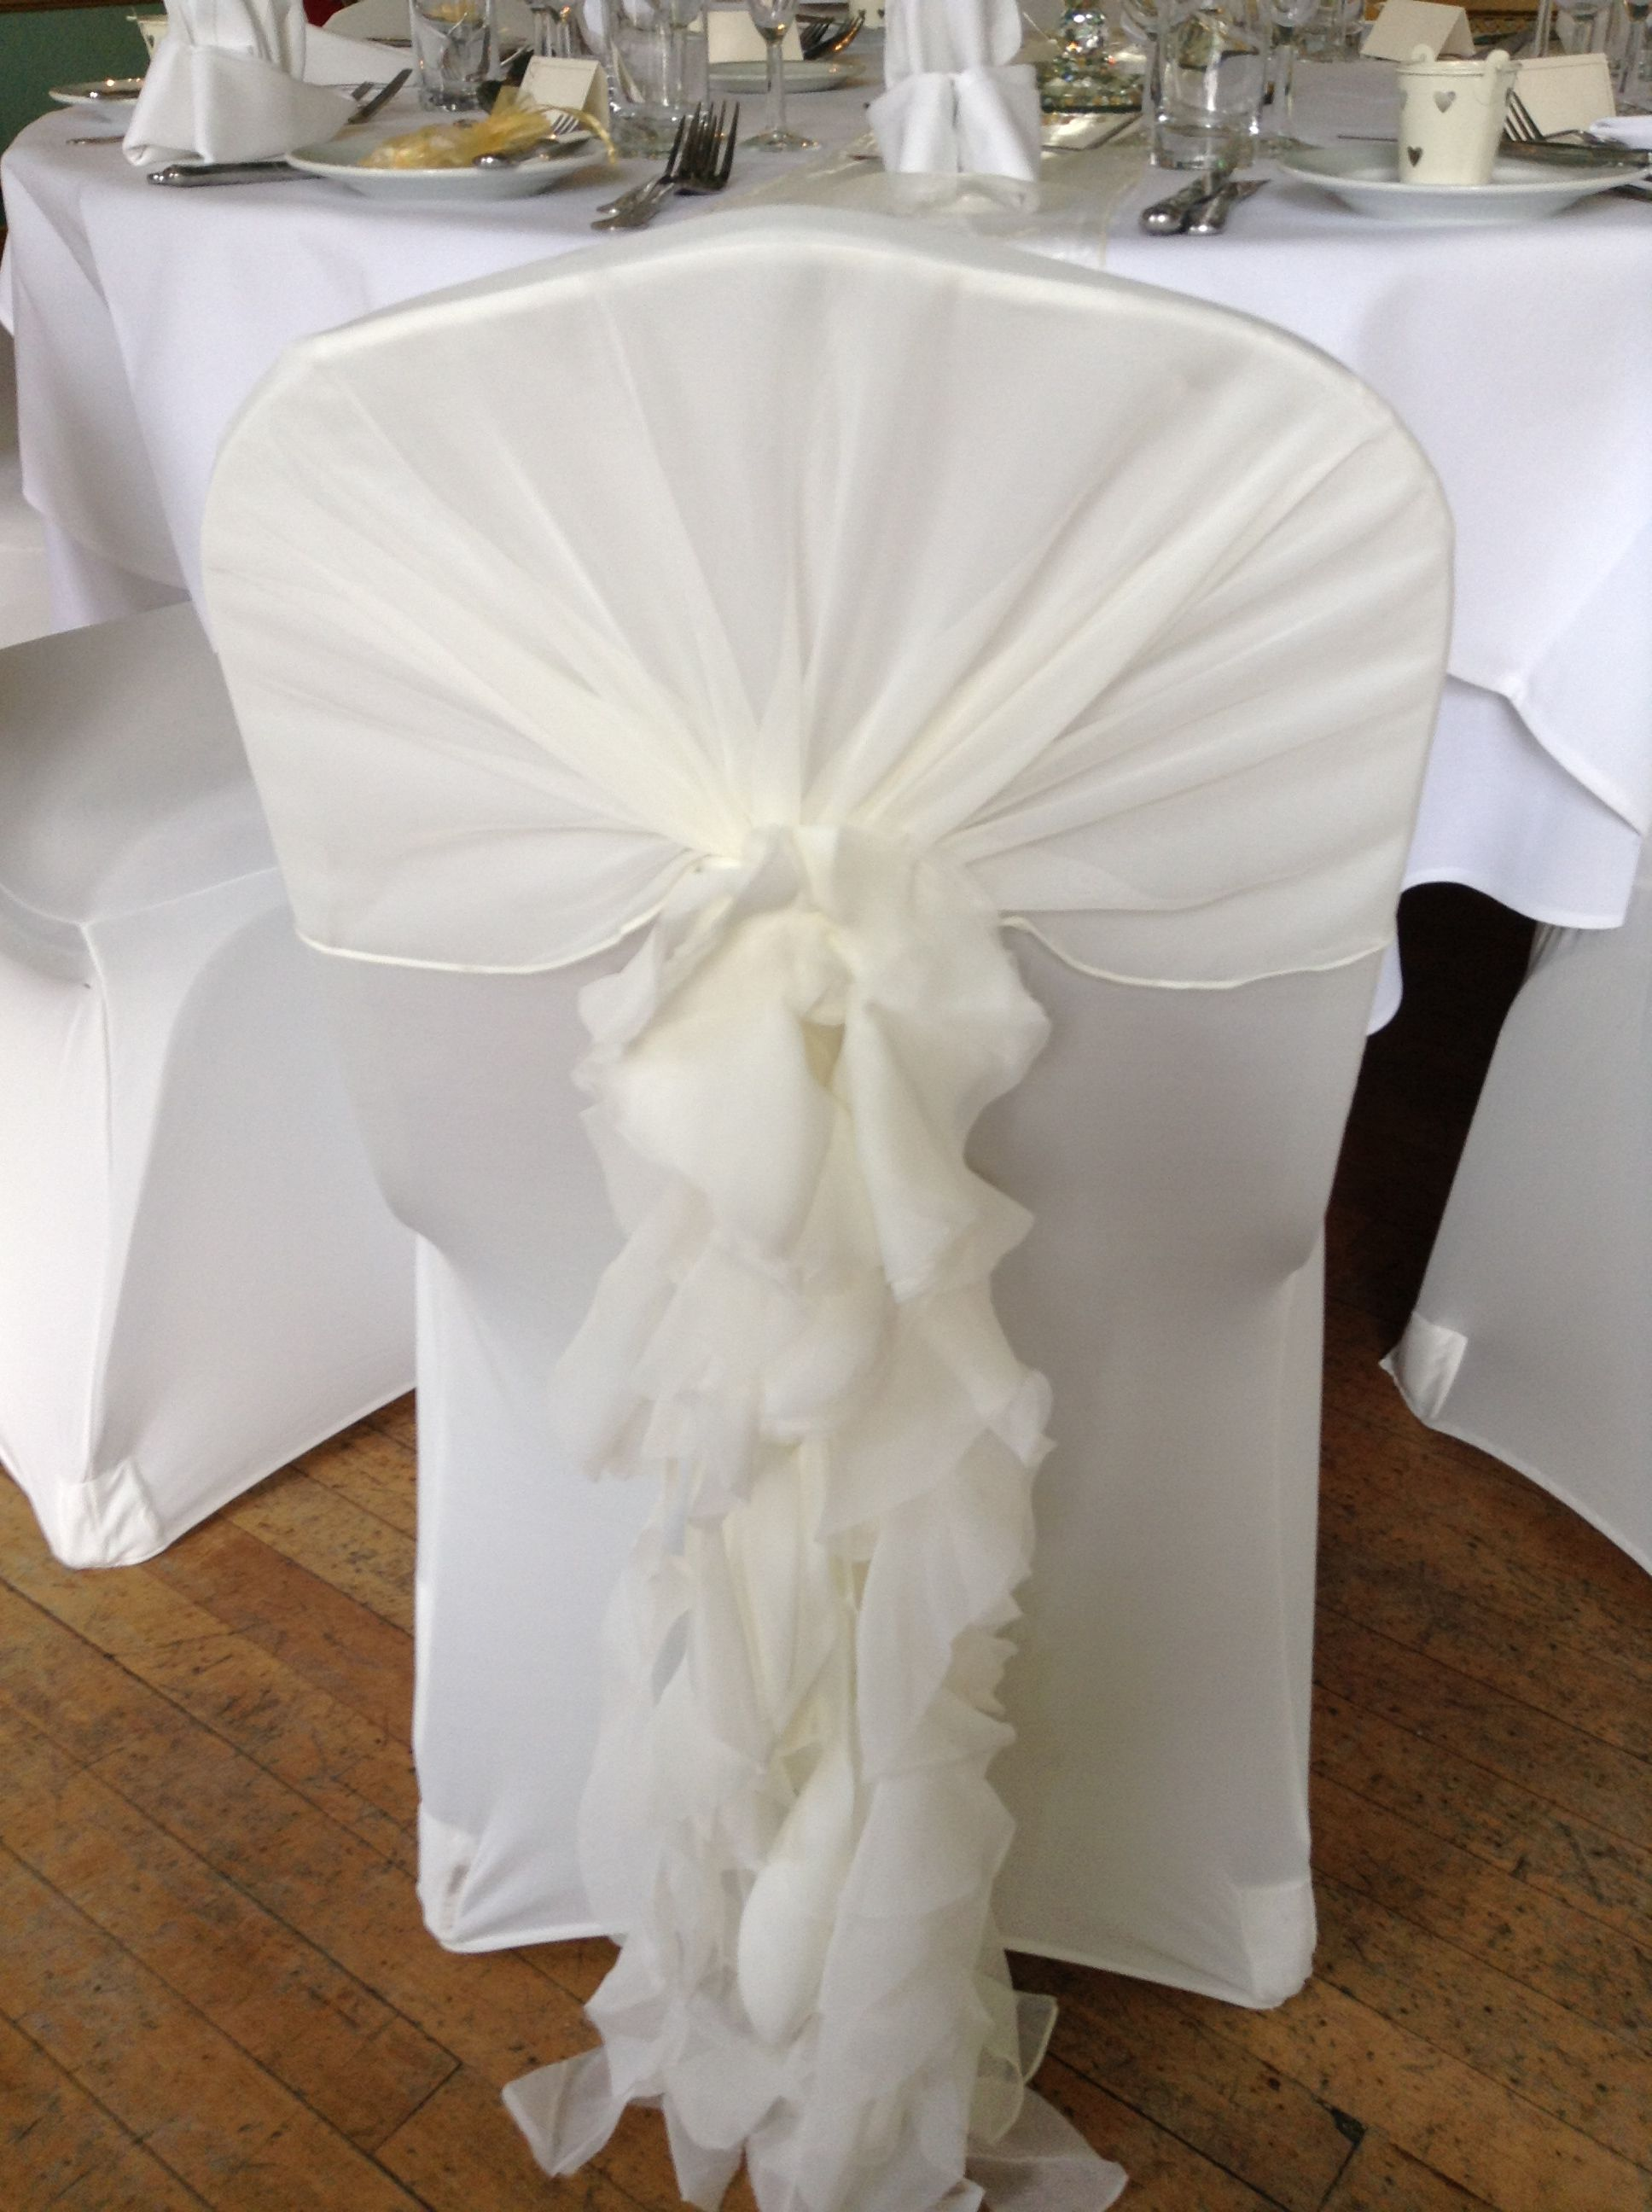 Swell Purple Satin Chair Covers Pink Sashes Pink And White Wedding Alphanode Cool Chair Designs And Ideas Alphanodeonline